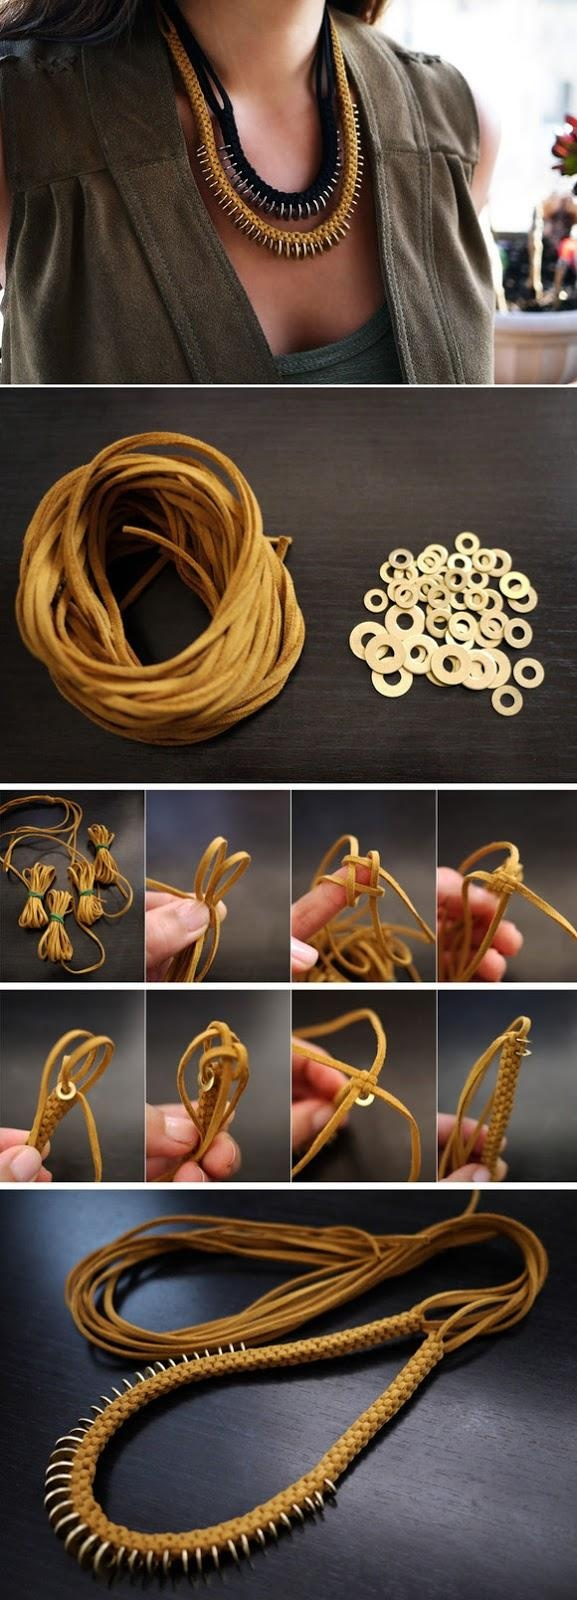 How To Make Leather and Ring Bracelet